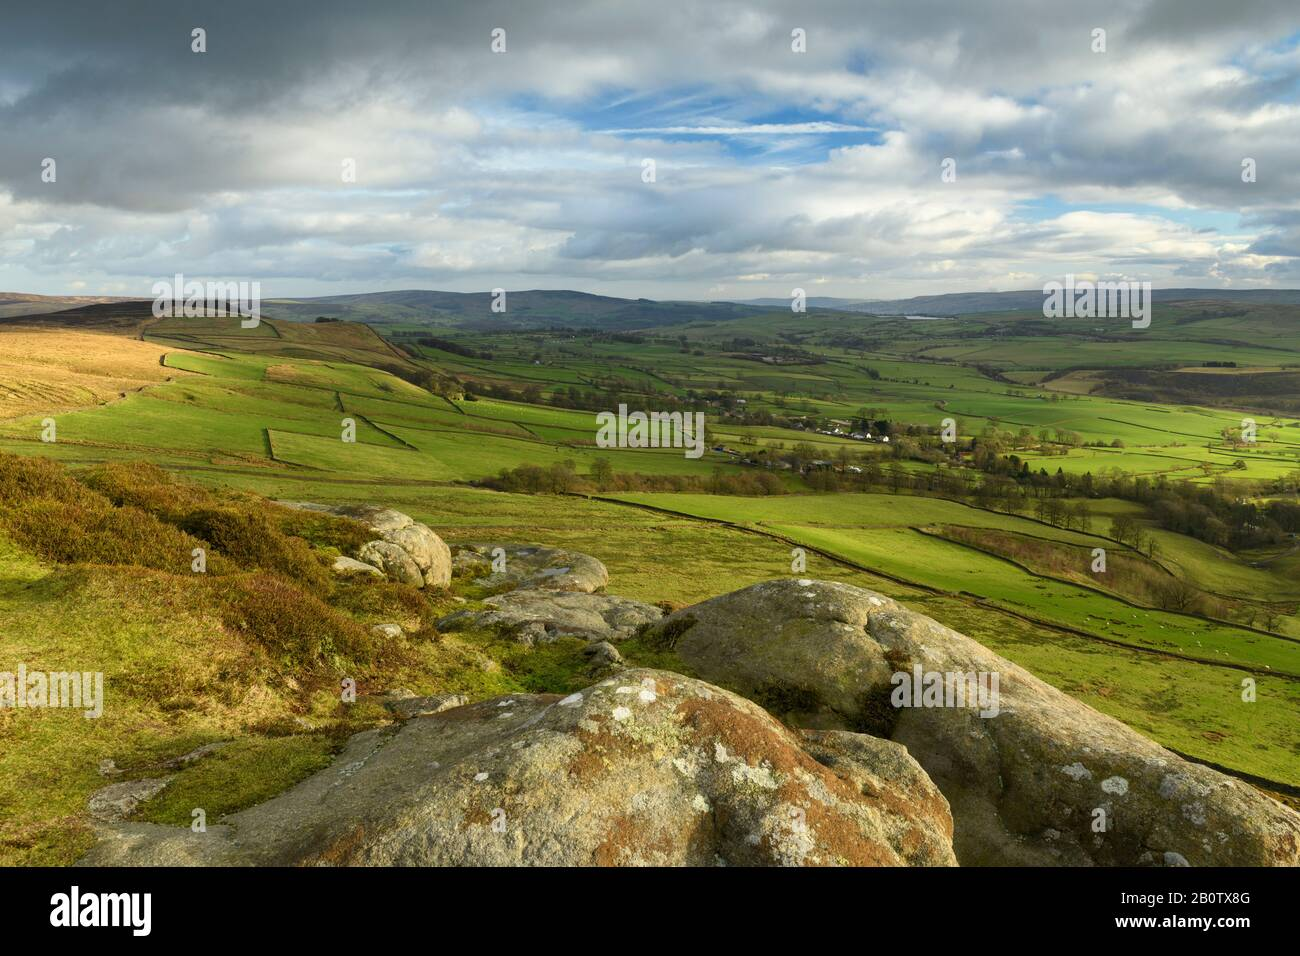 Scenic rural view from Embsay Crag (sunlit fells or moors, farm fields in valley, high upland hills, dramatic sky) - North Yorkshire, England, UK. Stock Photo